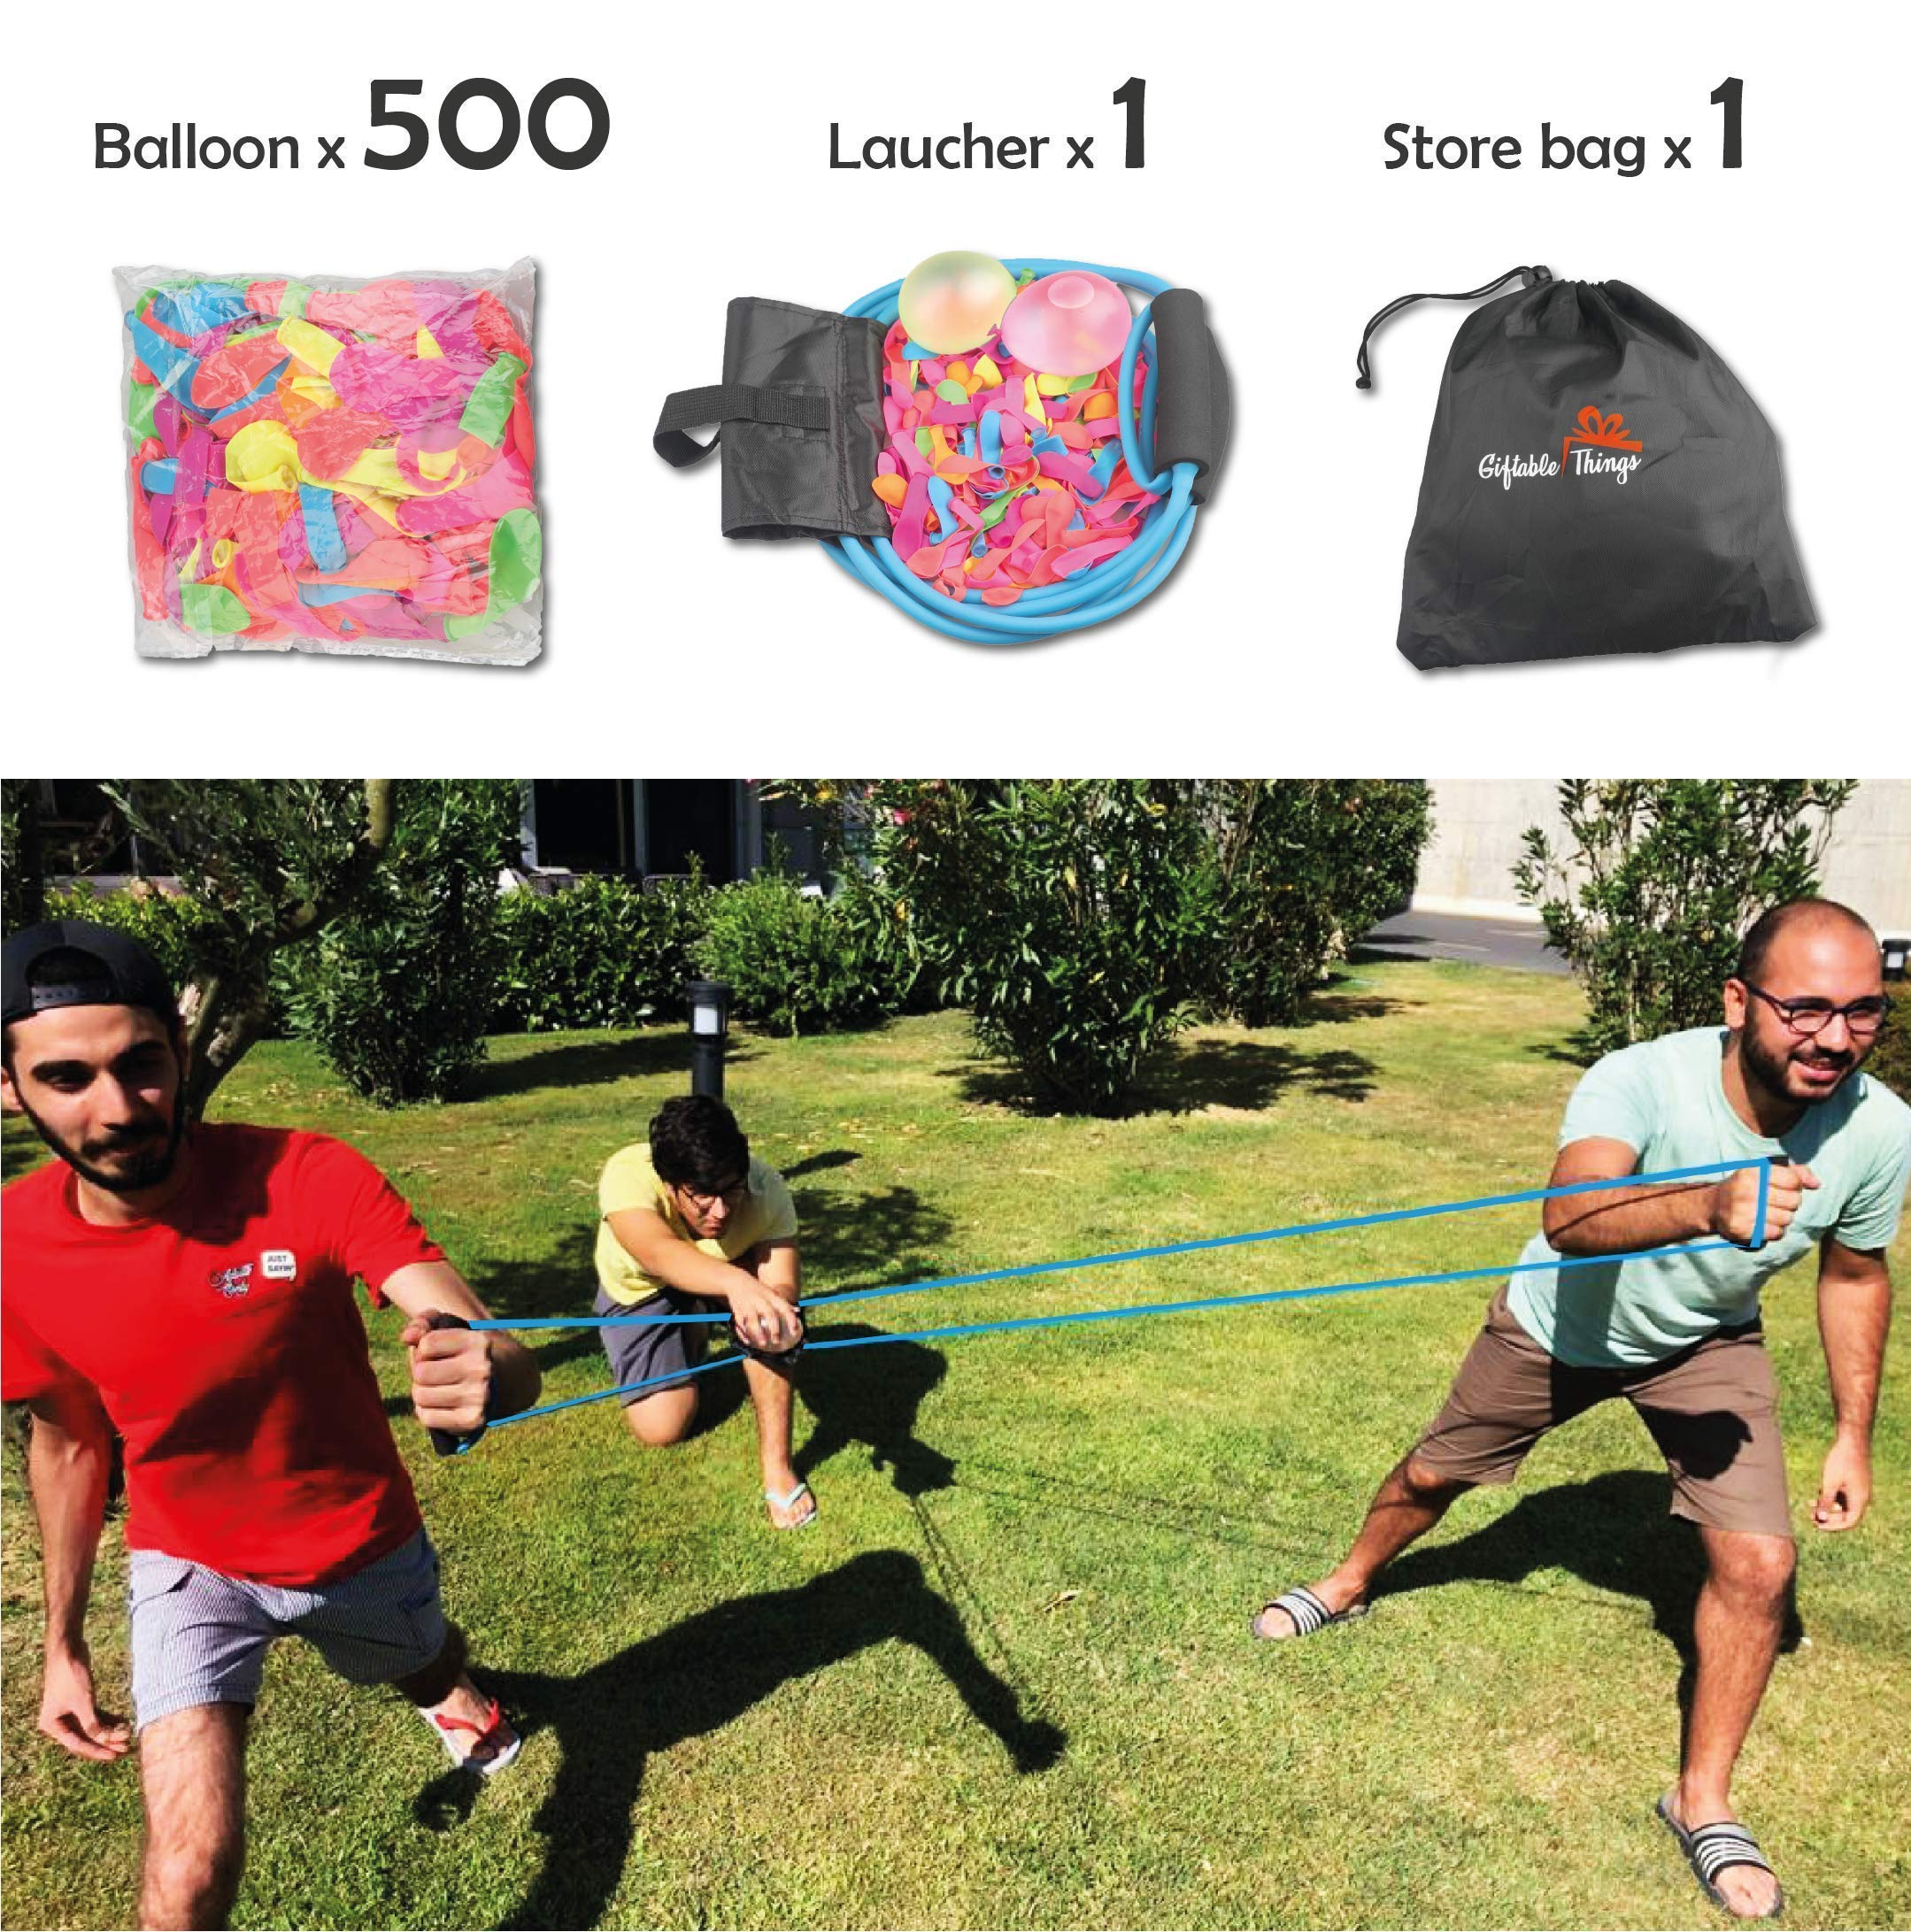 Water Balloon Launcher - Water Balloons Slingshot Cannon 3 People Balloon Launcher For 500 Yards - Outdoor Water Game For Kids and Adults - Coming With Carry Bag Include 500 Water Balloons !! by Giftable Things